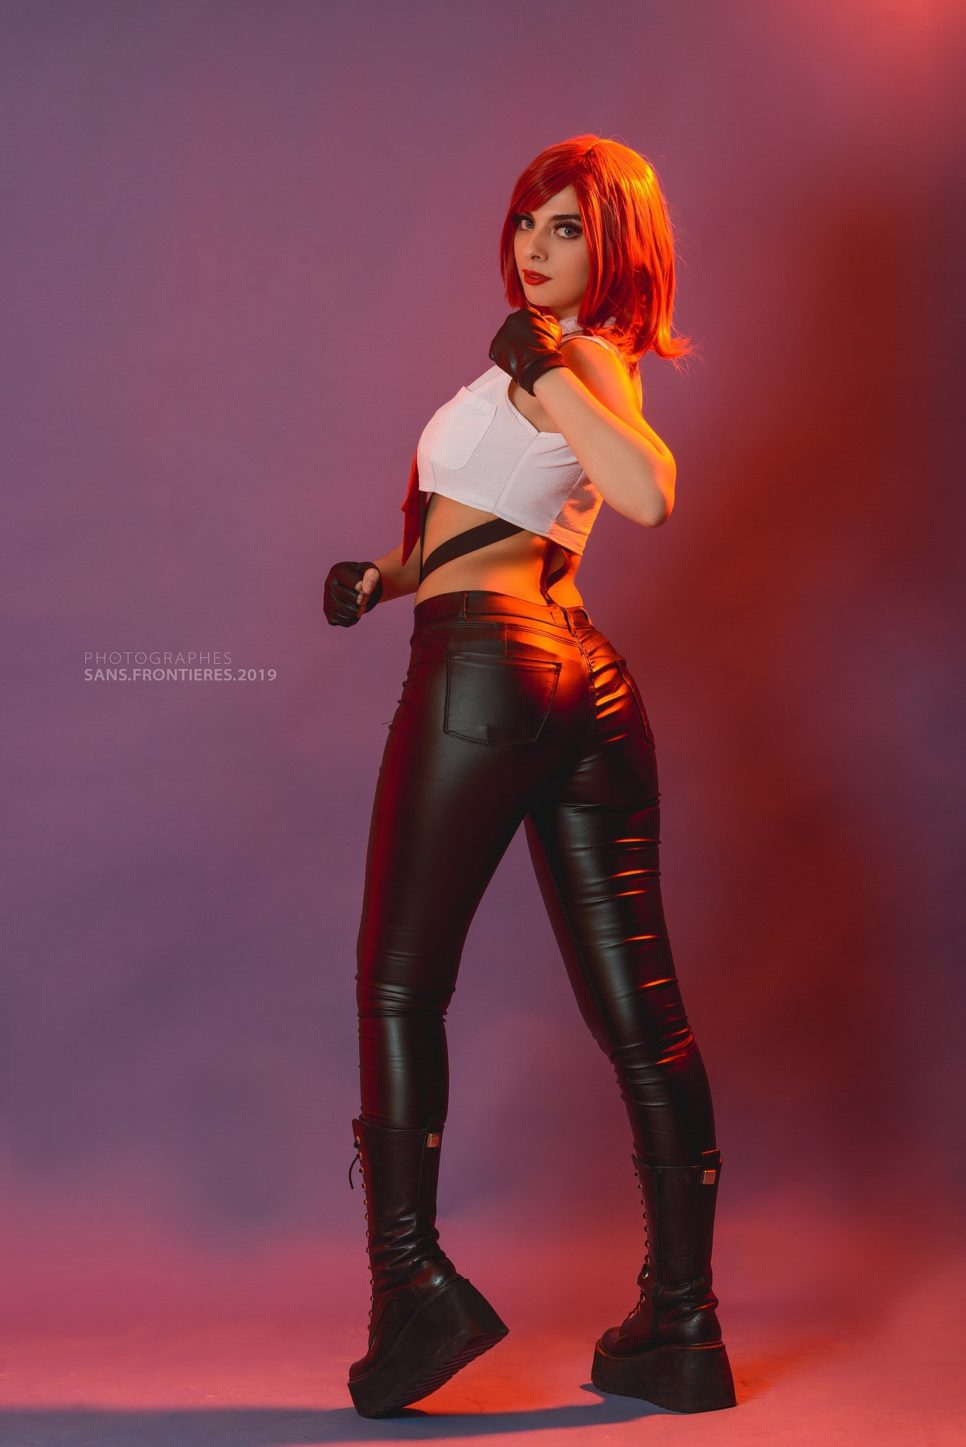 Vanessa | The King of Fighters